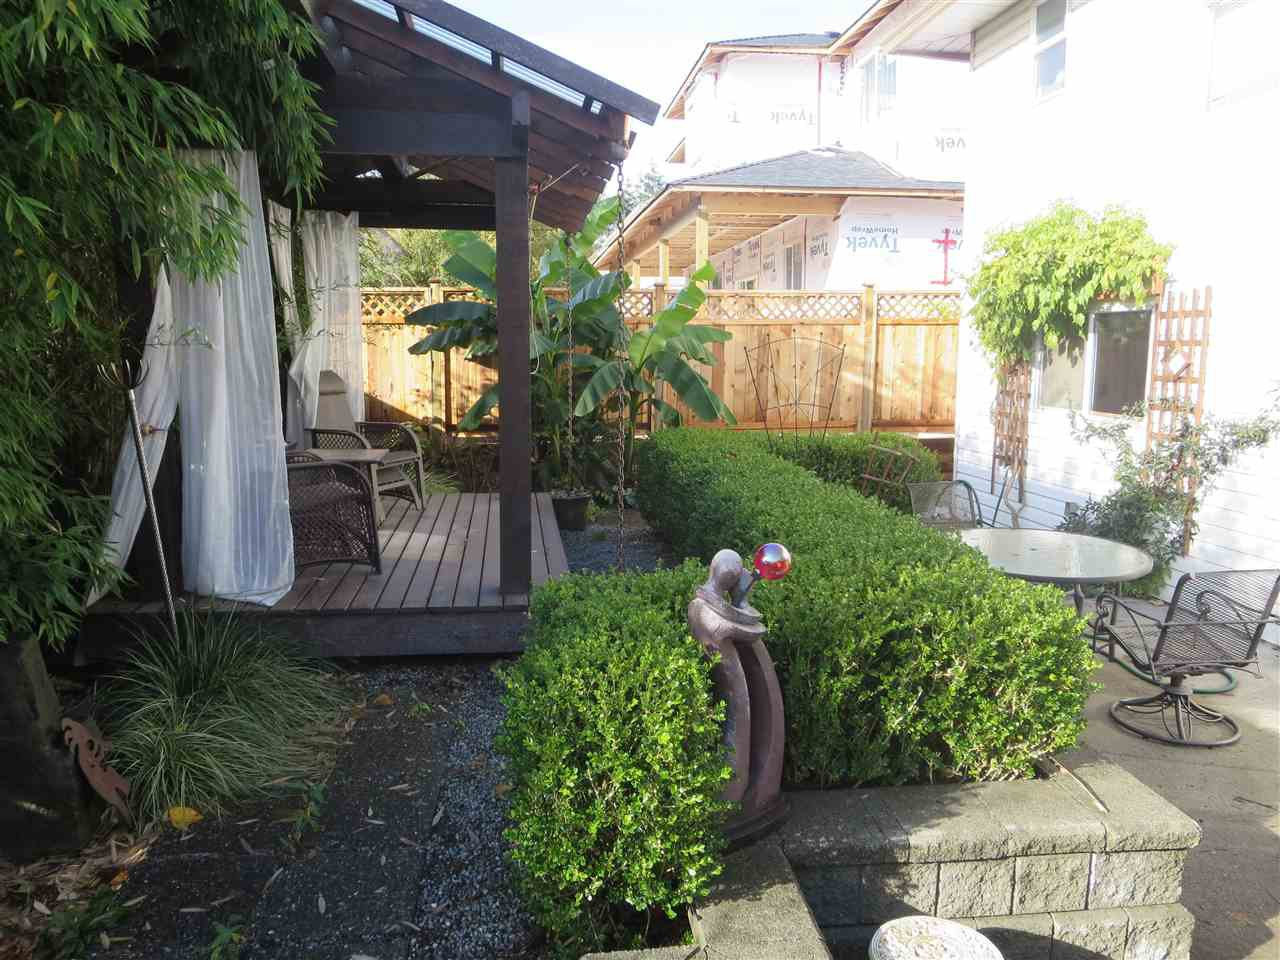 Photo 8: Photos: 19348 PARK Road in Pitt Meadows: Mid Meadows House for sale : MLS®# R2118610